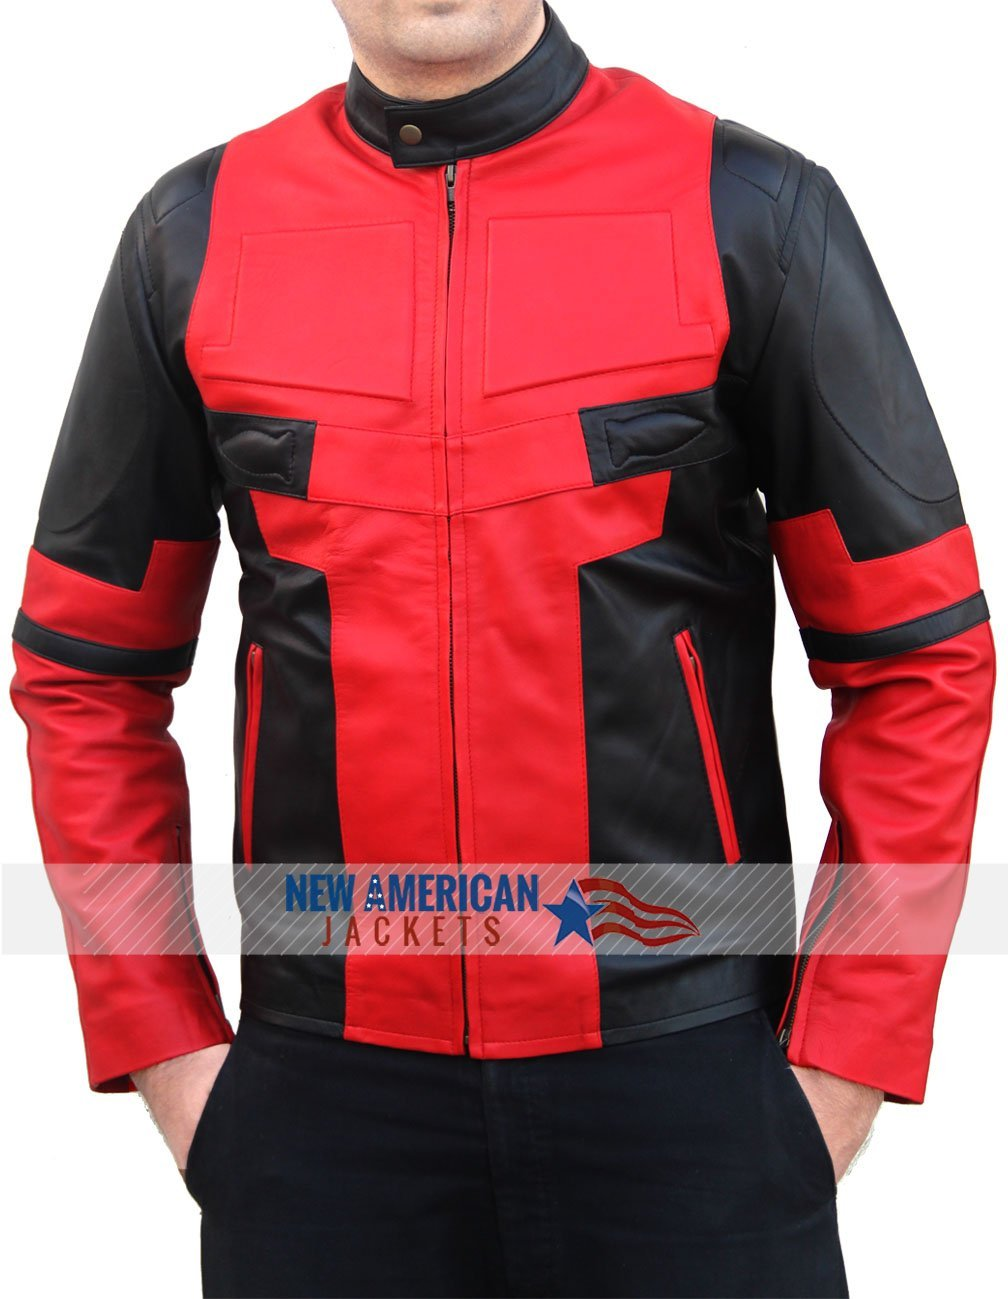 American outerwear leather jacket